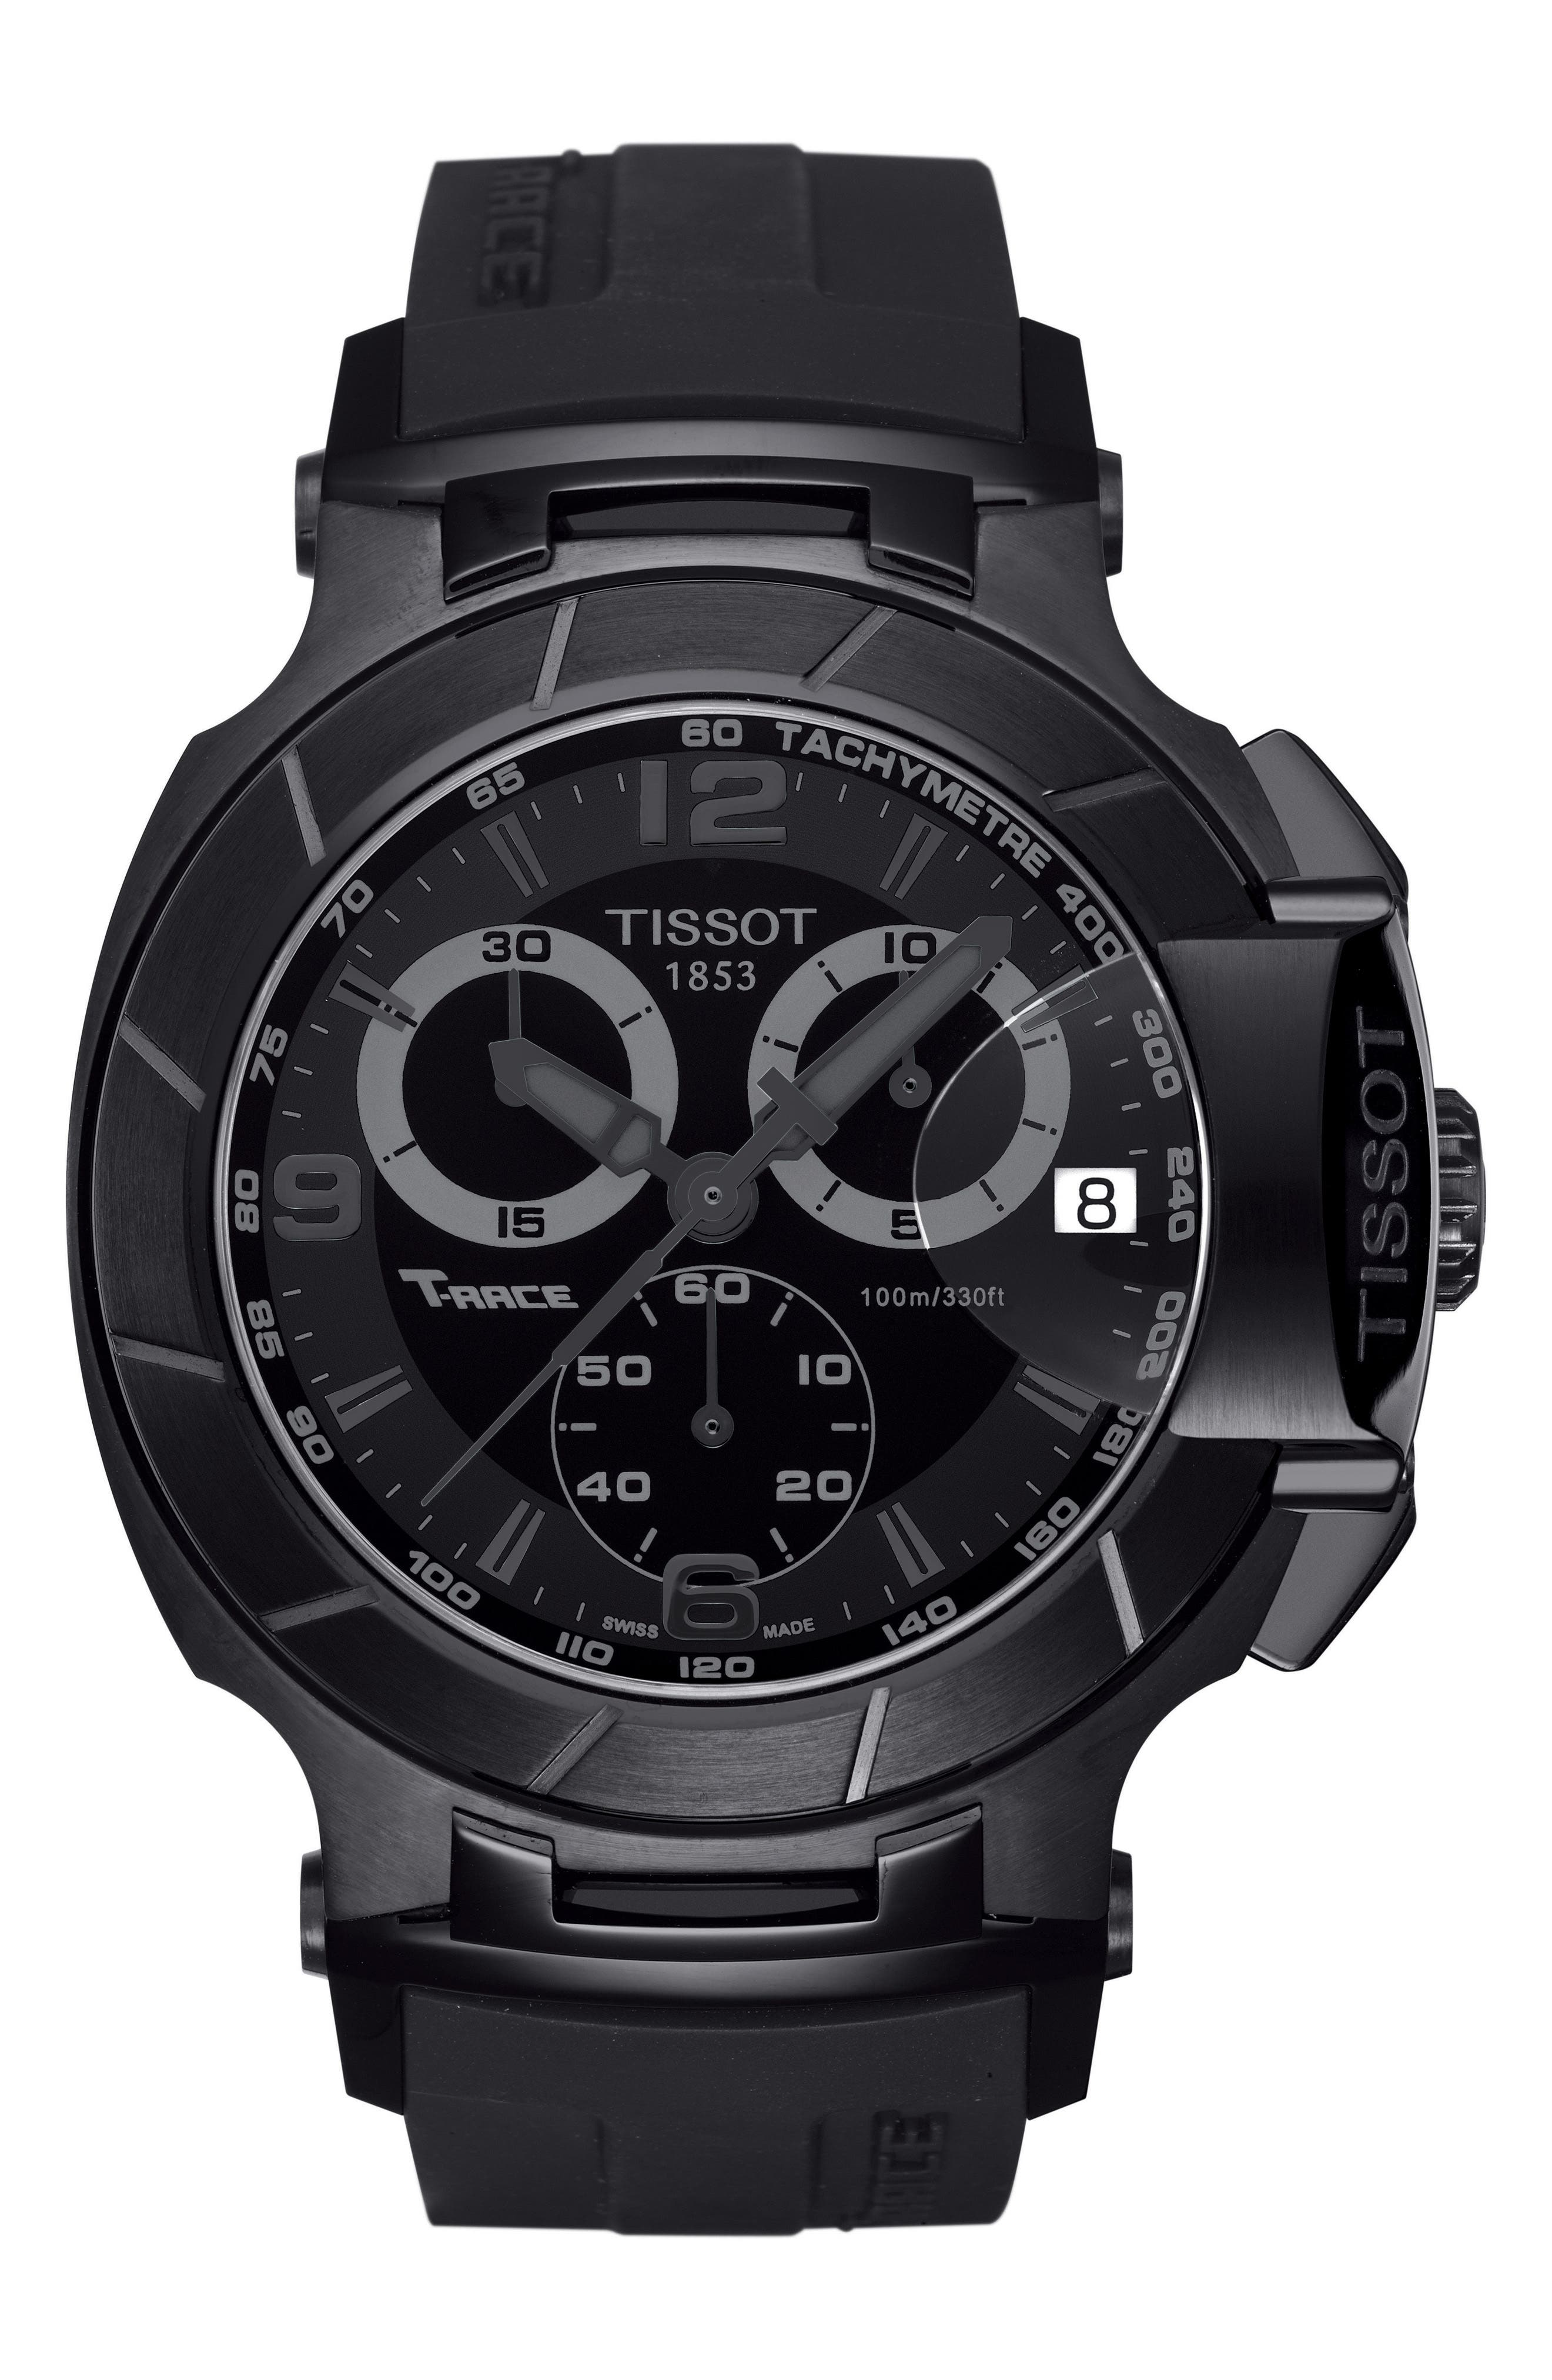 Alternate Image 1 Selected - Tissot T-Race Chronograph Silicone Strap Watch, 50mm